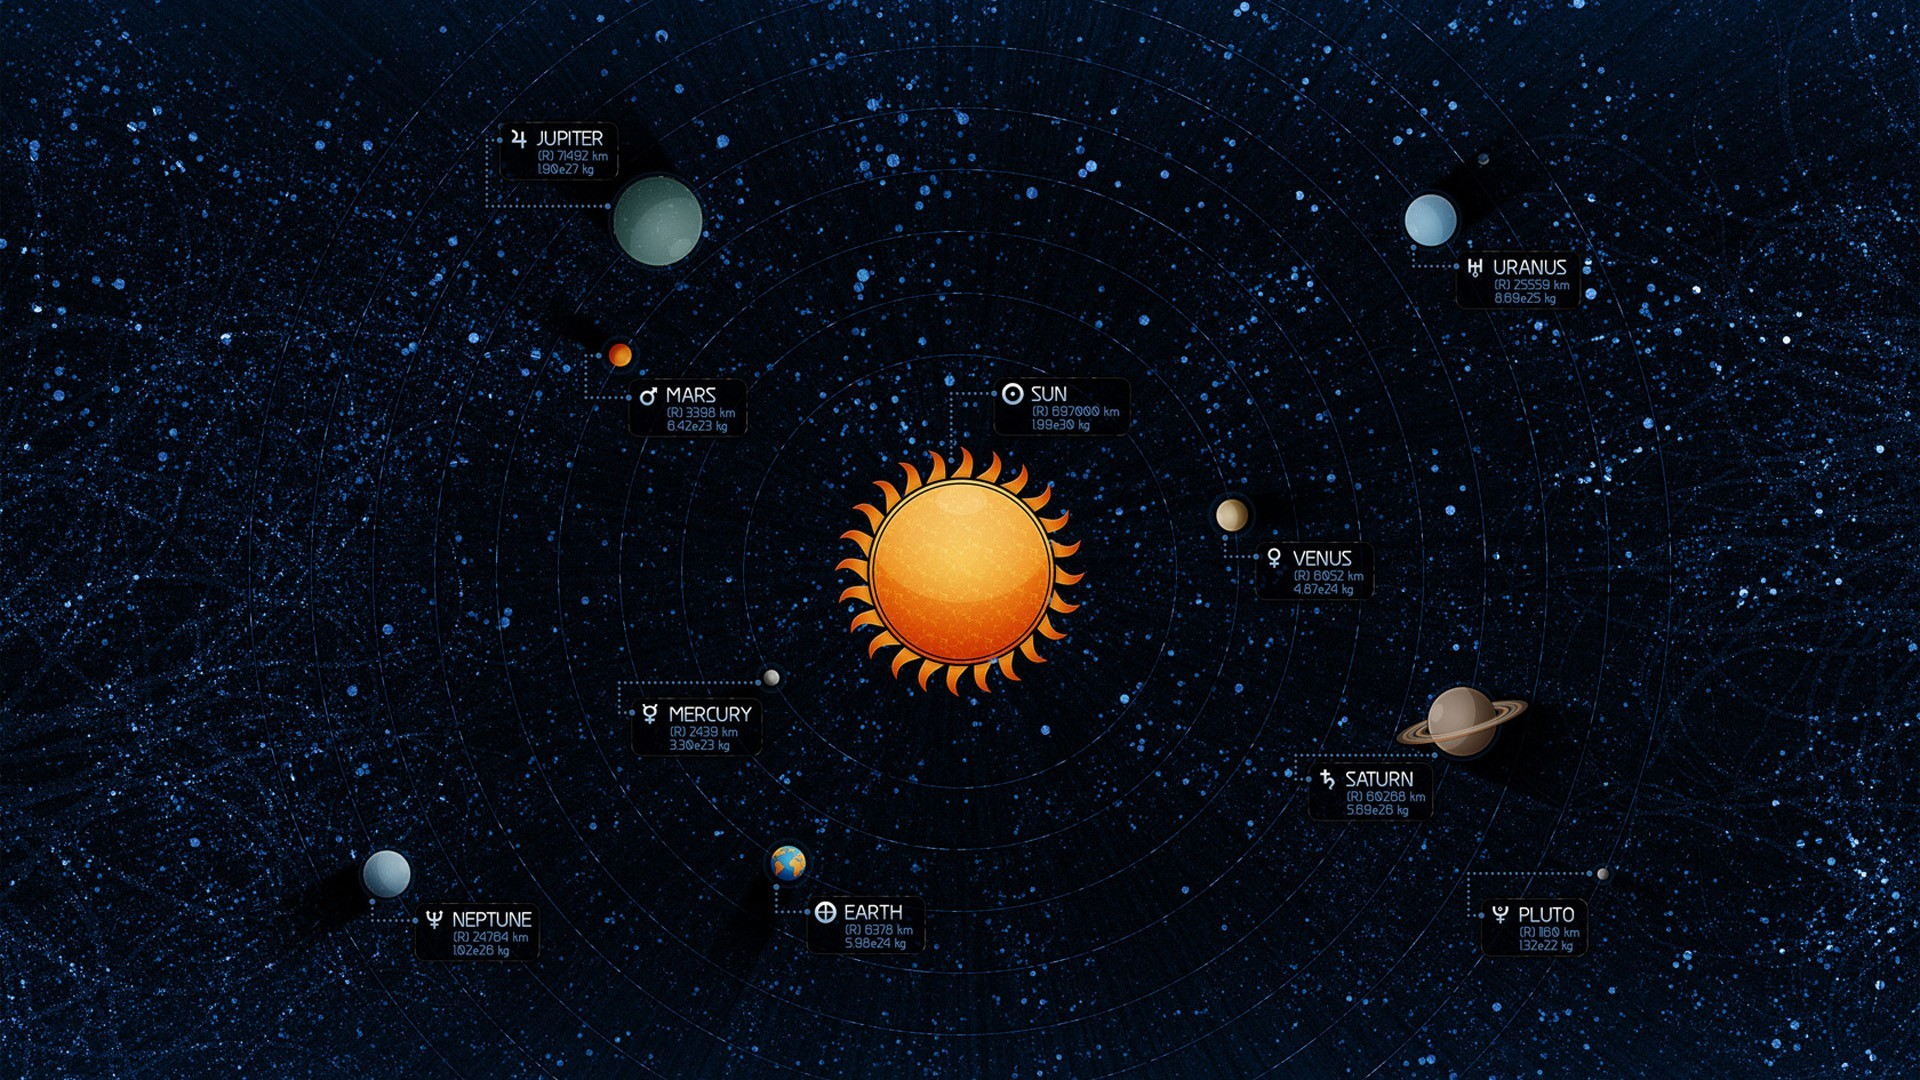 planets in the solar system wallpaper - photo #22